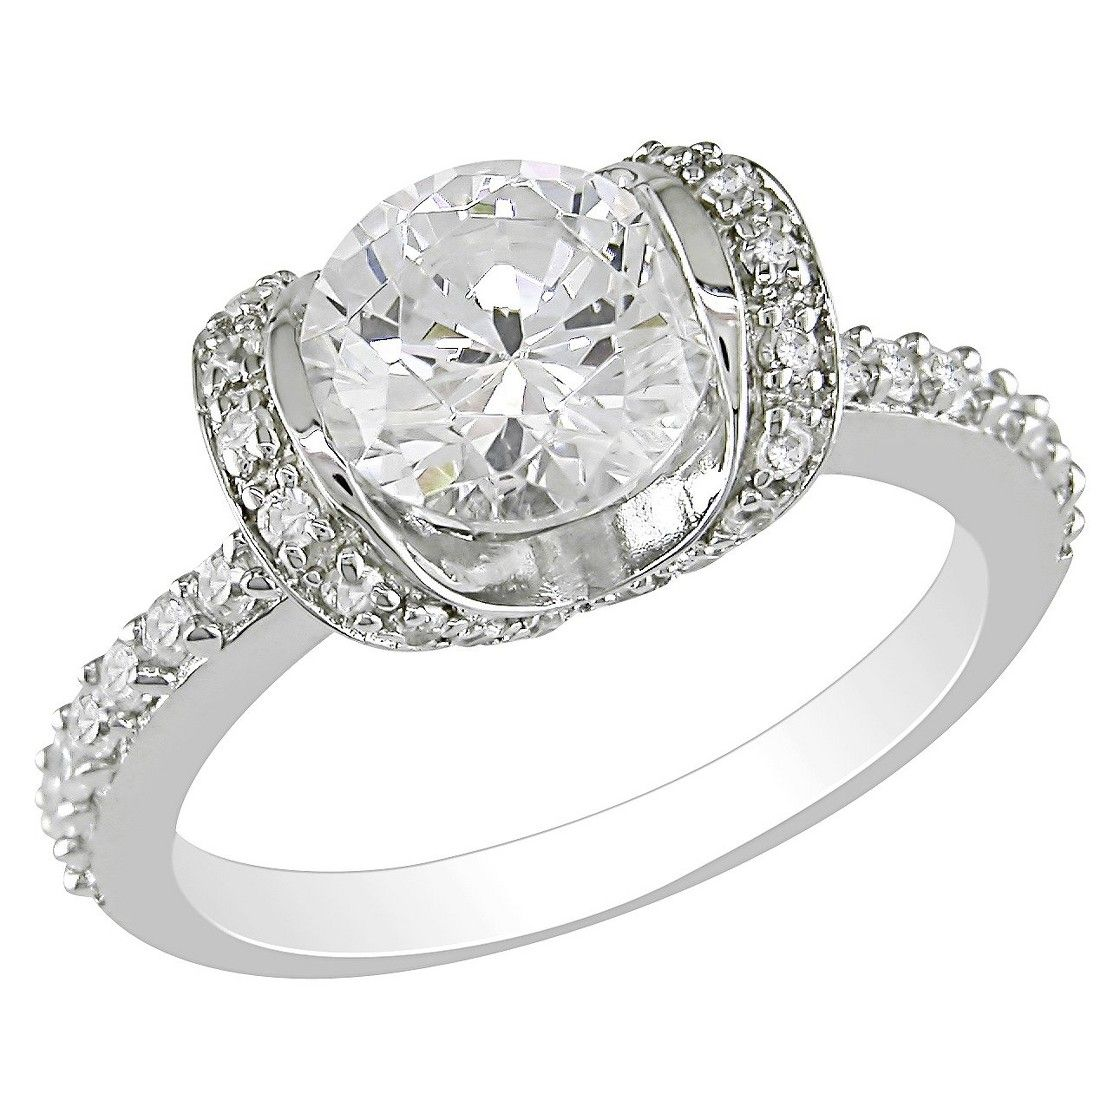 4.14 CT. Cubic Zirconia Engagement Ring in Sterling Silver